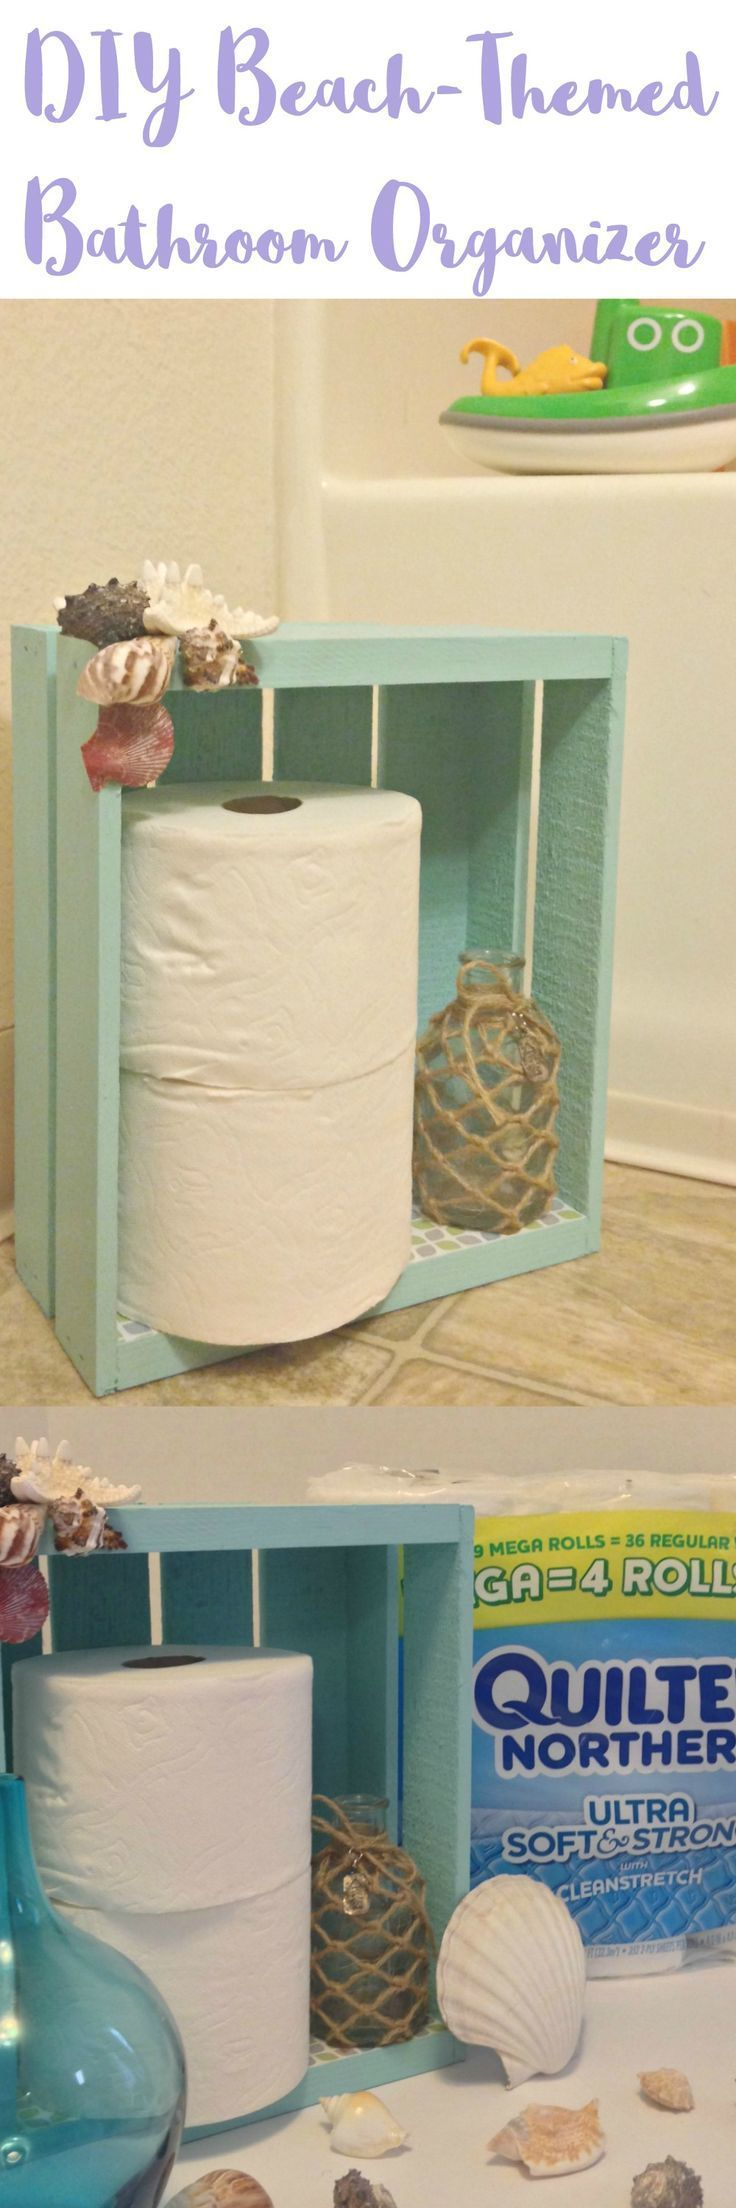 If you're doing a remodel or just need ideas for cheap bathroom storage on a budget, this little shelf organizer is great for small space bathrooms. We use it in our beach themed bathroom, and use shells to add a rustic texture to it. It's easy to make and can sit on the floor or be used on the wall as shelves. @Walmart #MegaPrepped #ad